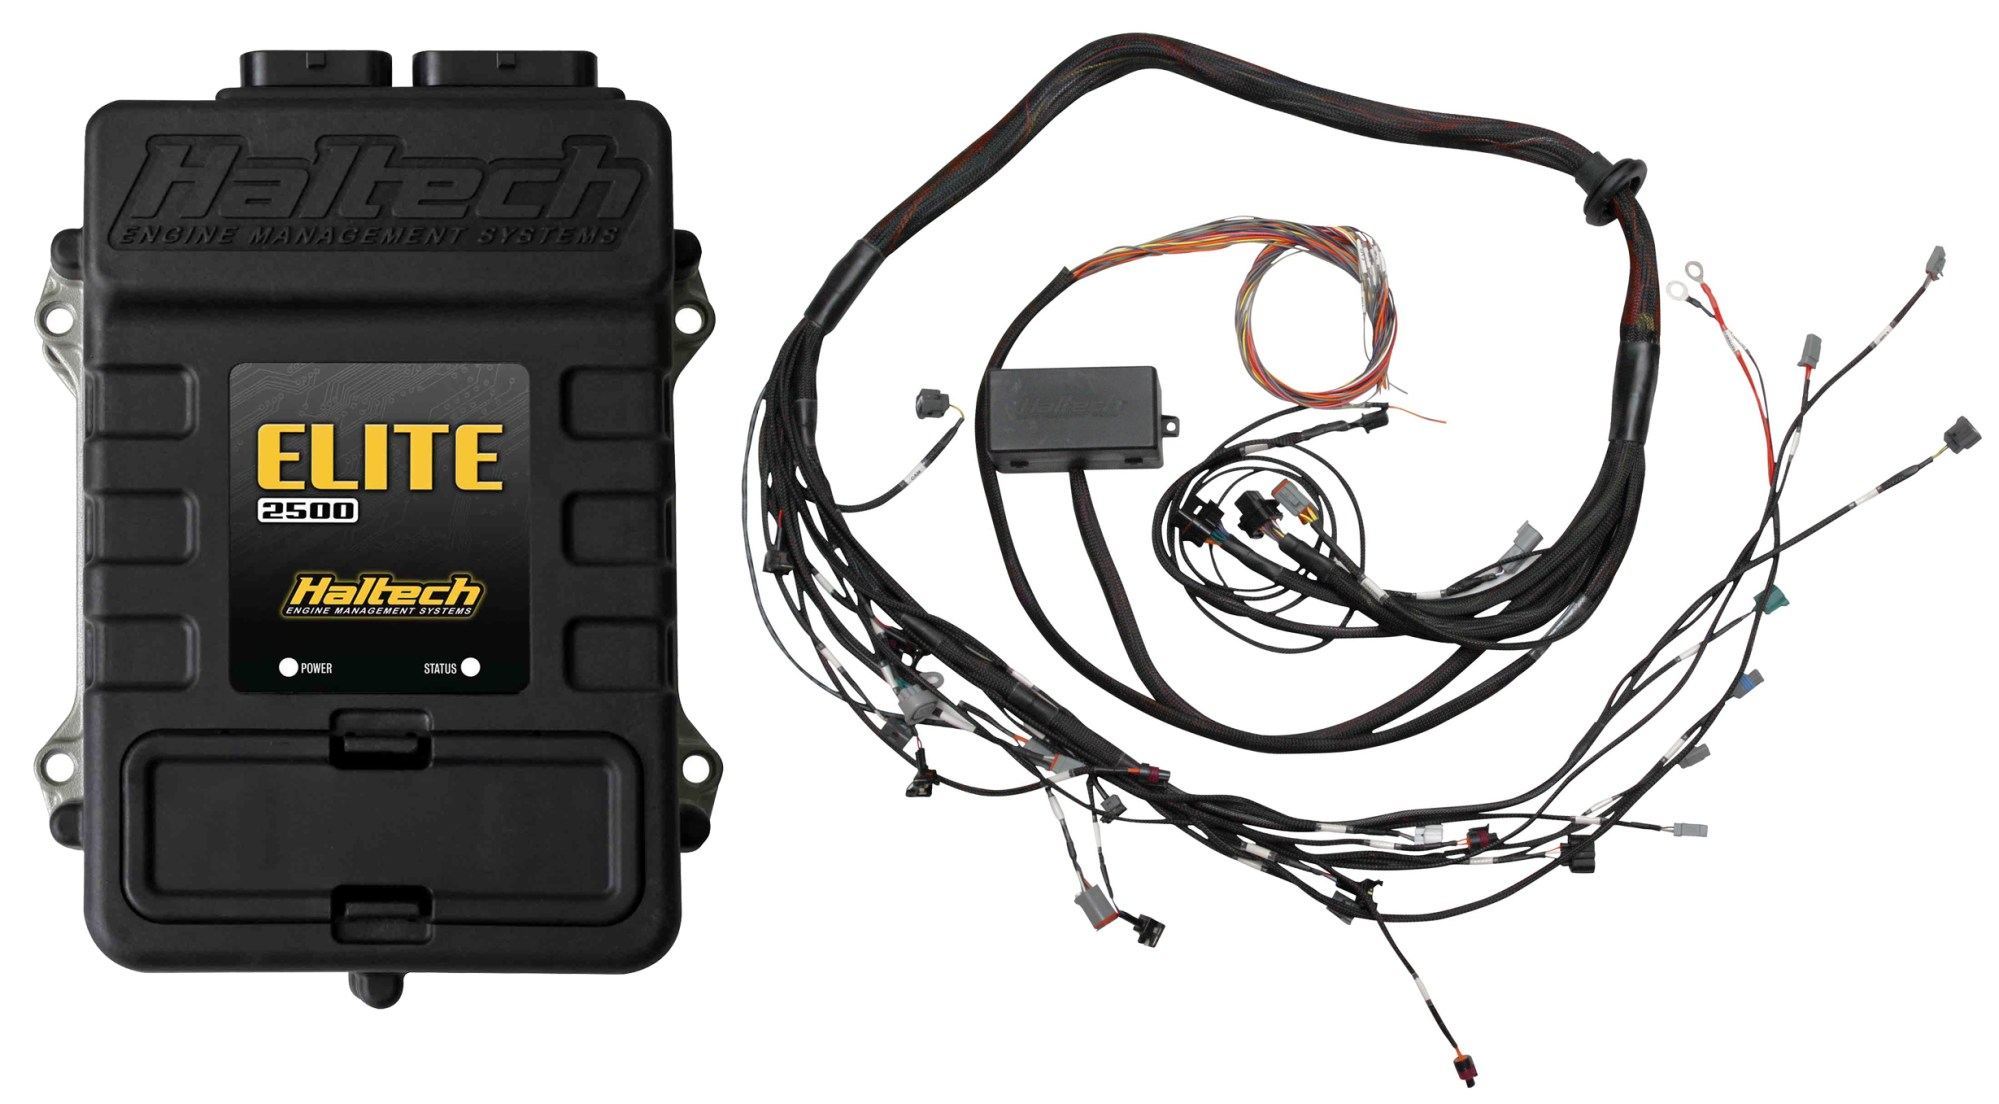 hight resolution of elite 2500 toyota 2jz terminated harness ecu kit dual power output 115mj 150mj power select 6 cdi